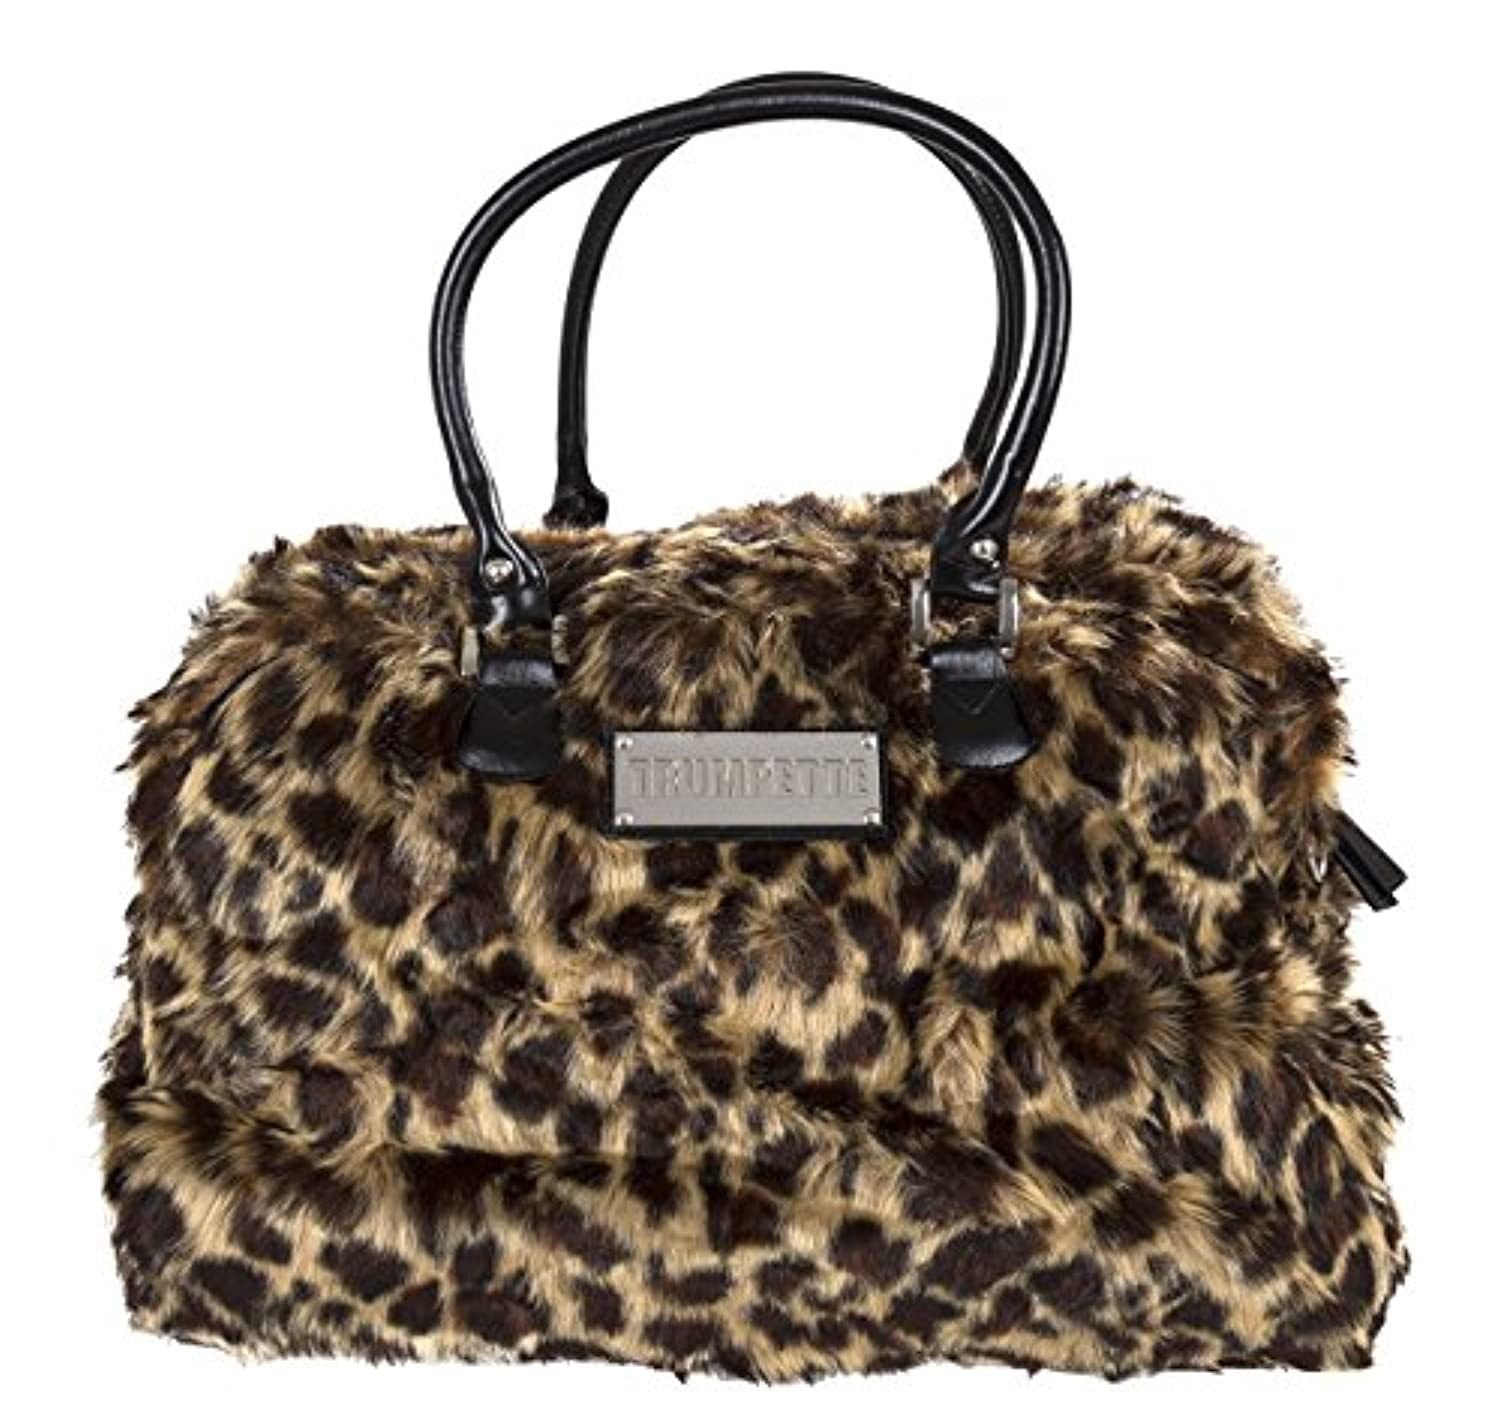 Trumpette Schleppbags Diaper Bag in Leopard Print Fur, Large by Trumpette